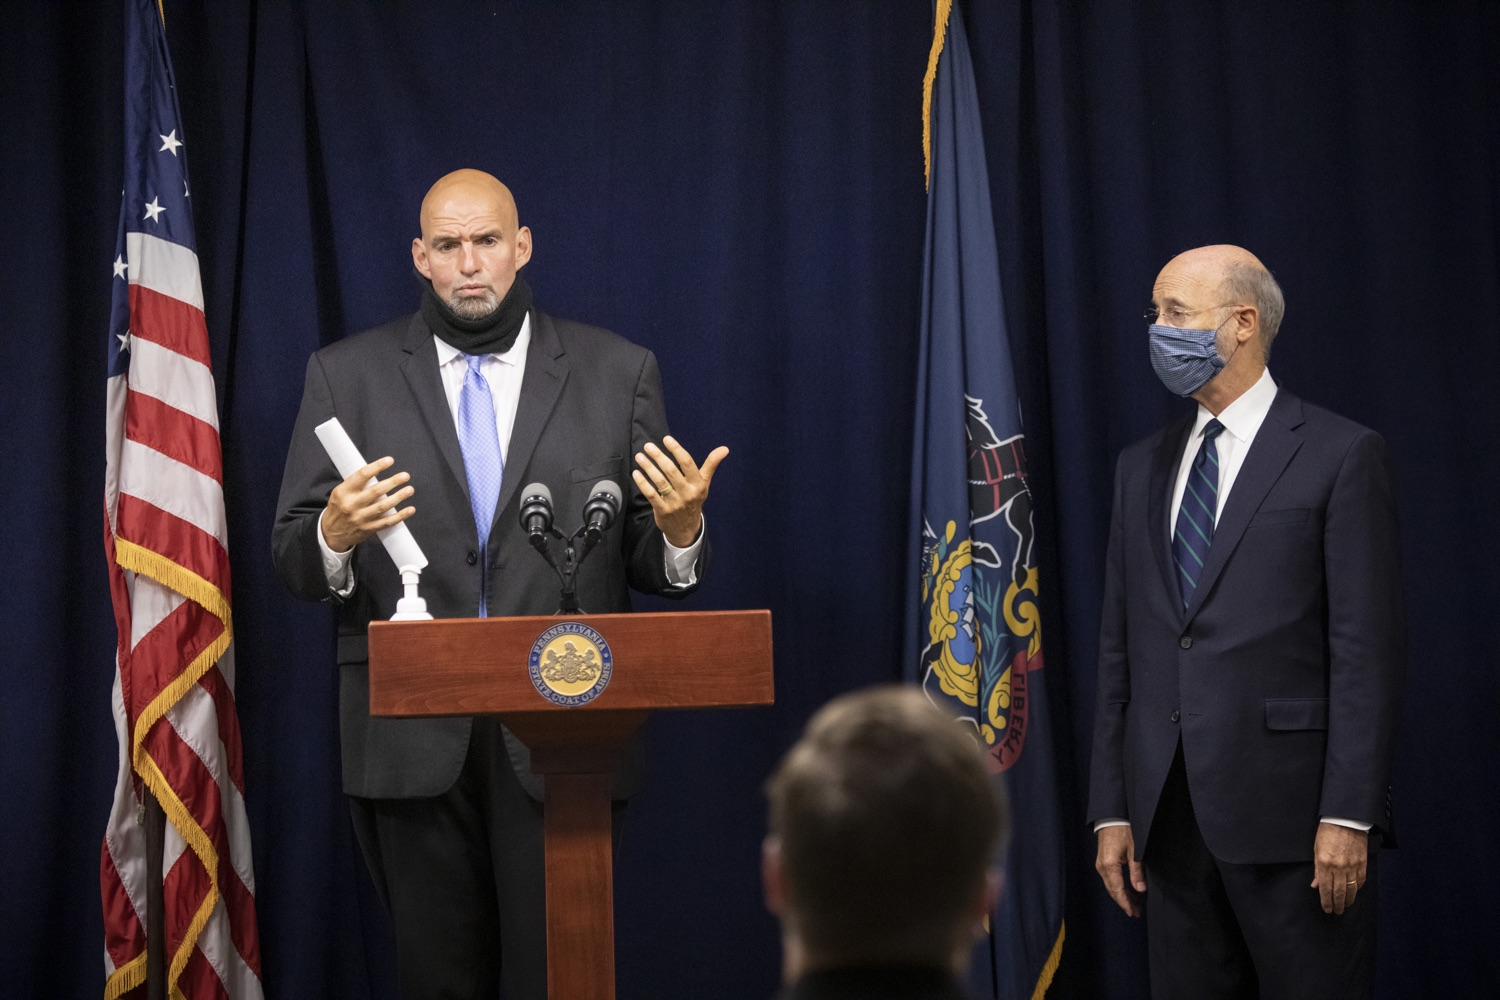 """<a href=""""https://filesource.wostreaming.net/commonwealthofpa/photo/18239_gov_recMarijuana_dz_021.jpg"""" target=""""_blank"""">⇣Download Photo<br></a>Lt. Gov. John Fetterman speaking with the press. Governor Tom Wolf and Lt. Governor John Fetterman today called on the legislature to take up the legalization of adult-use cannabis to help with the states economic recovery amid COVID-19. Legalization will also create more outlets for important restorative justice programs in the commonwealth.  Harrisburg, PA  Sept. 3, 2020"""